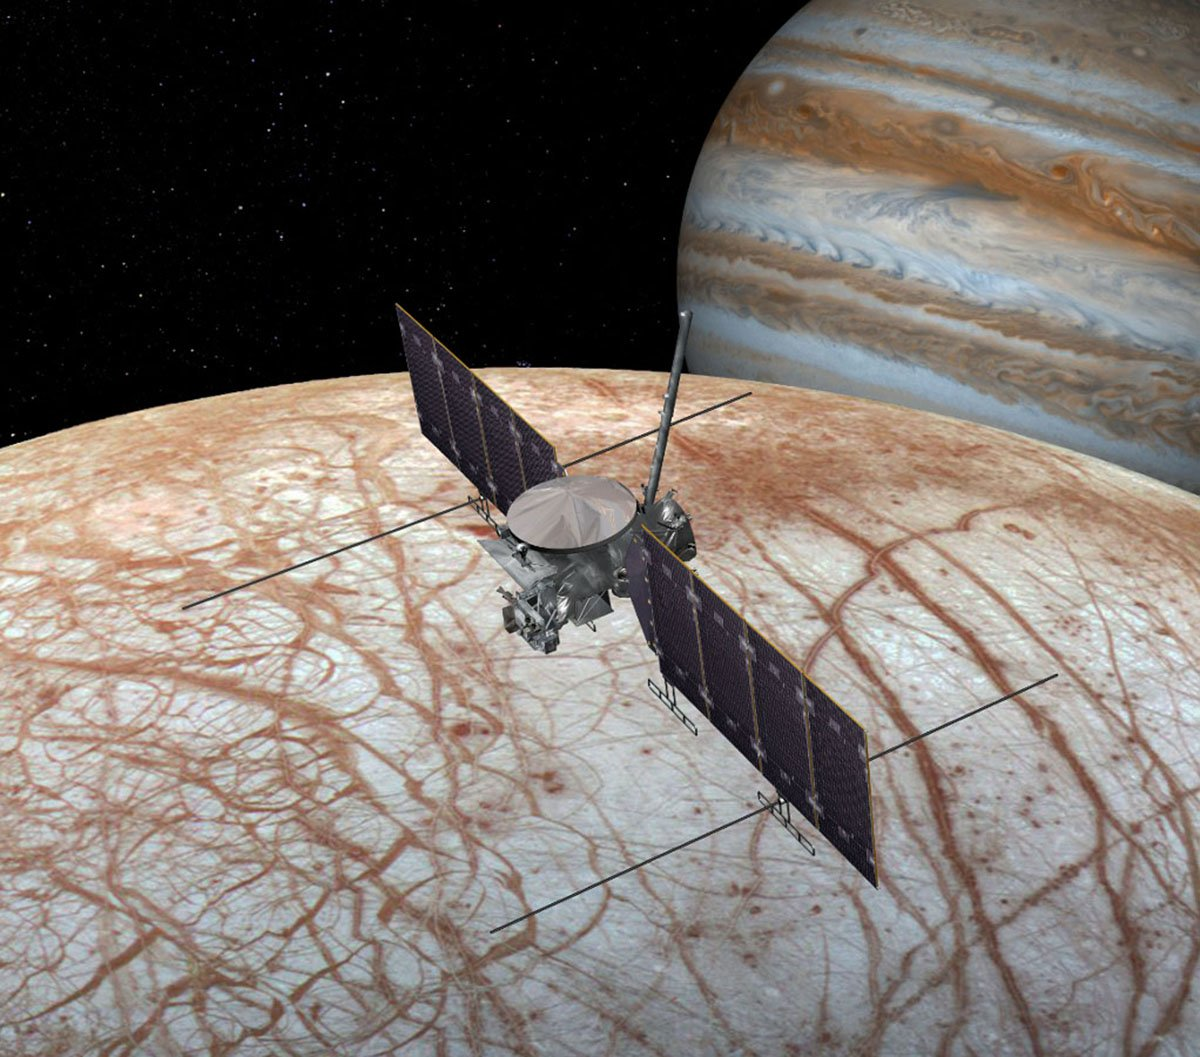 Europa Clipper Mission